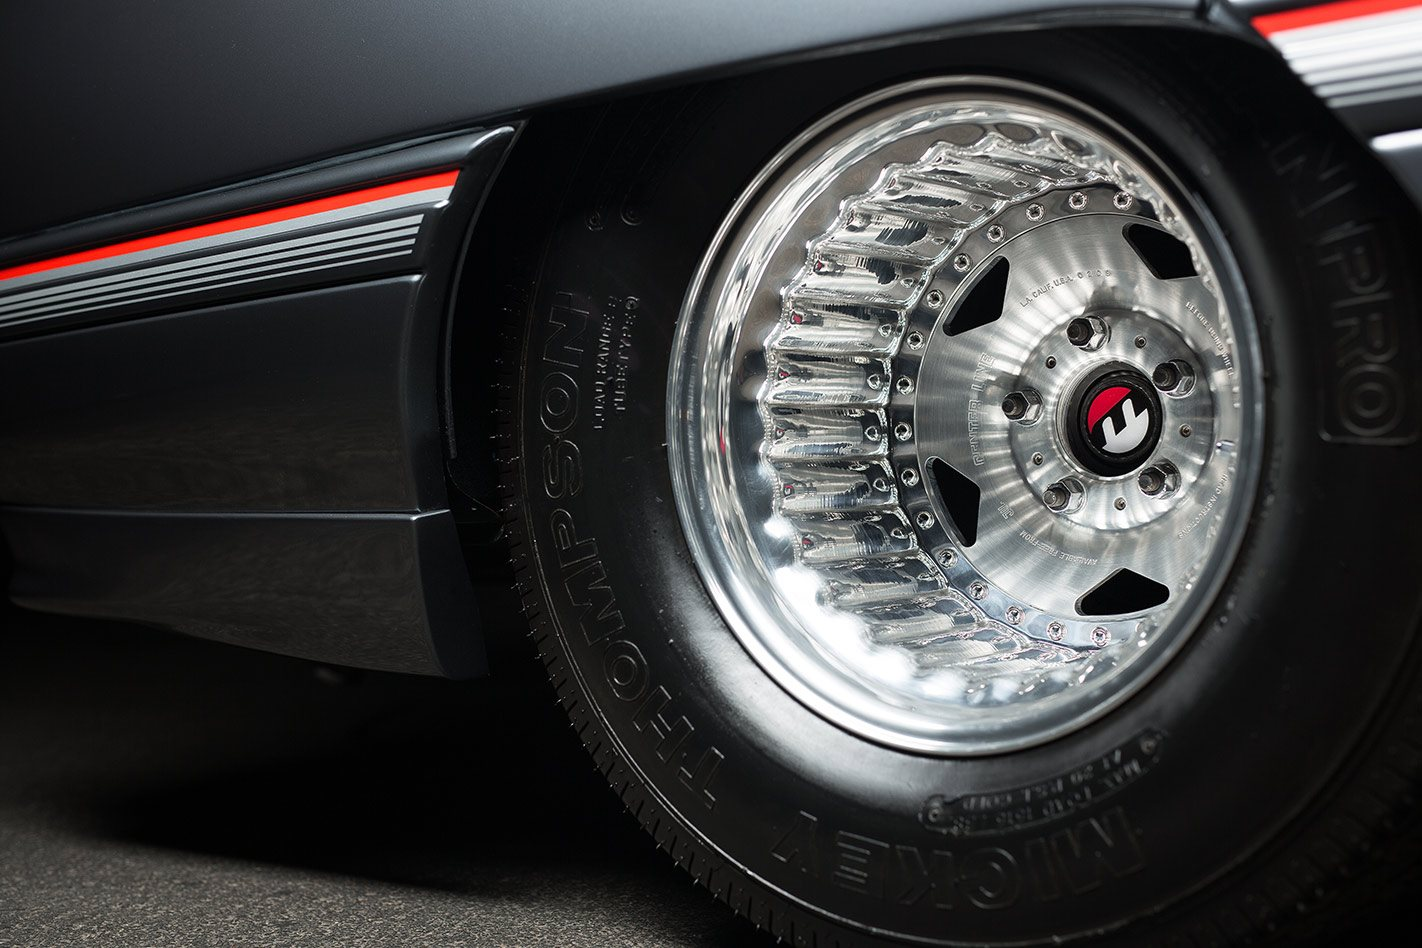 Holden Commodore VN SS wheel